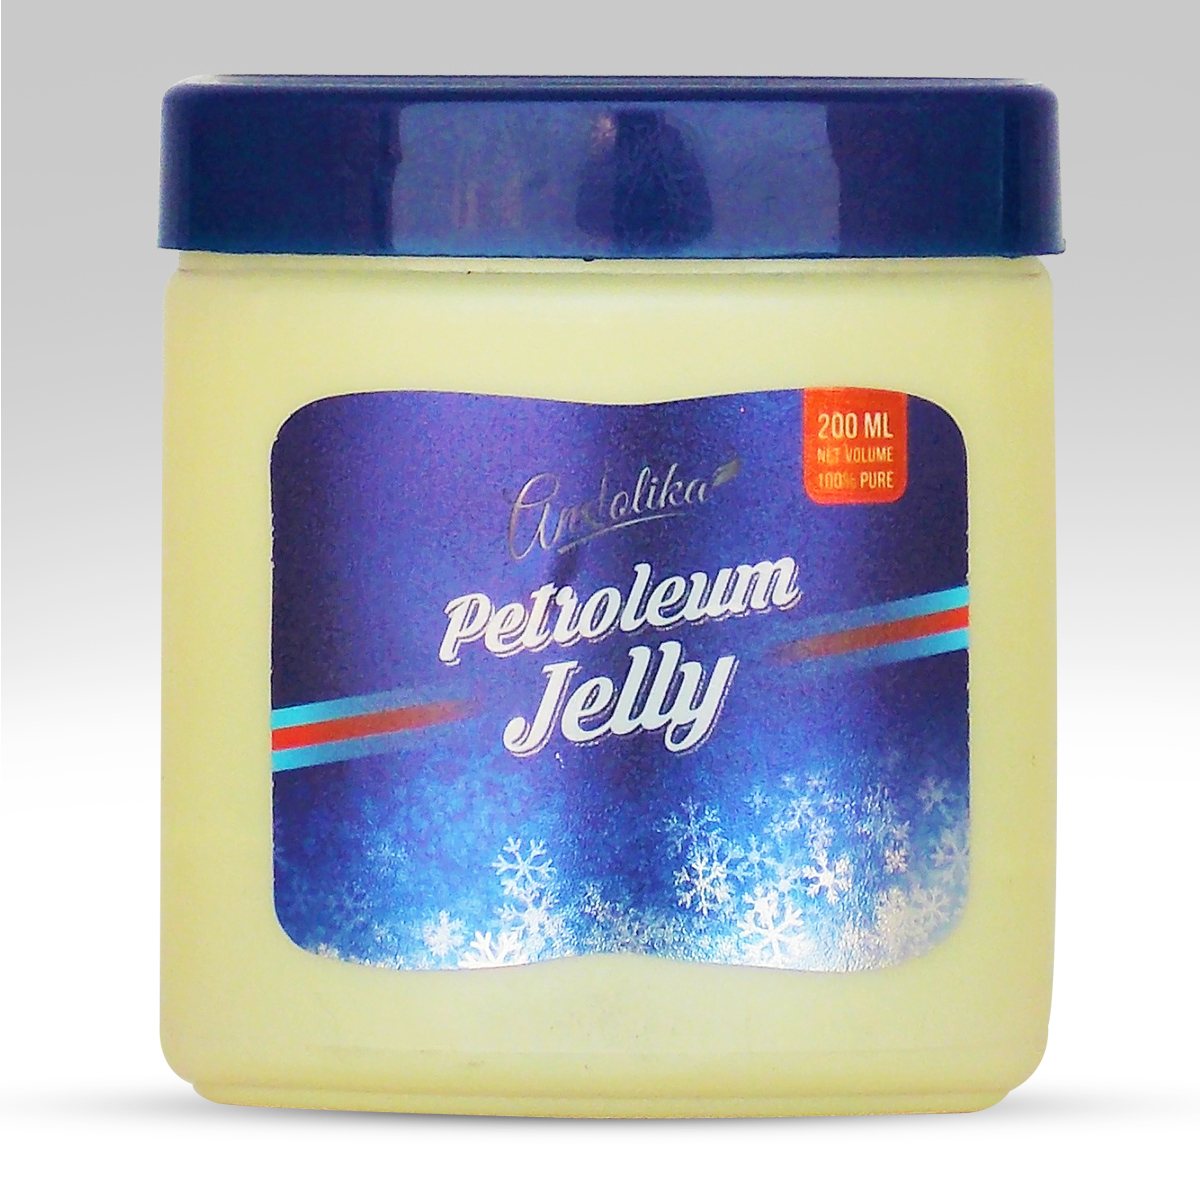 PERFUMED PETROLEUM JELLY   200ML